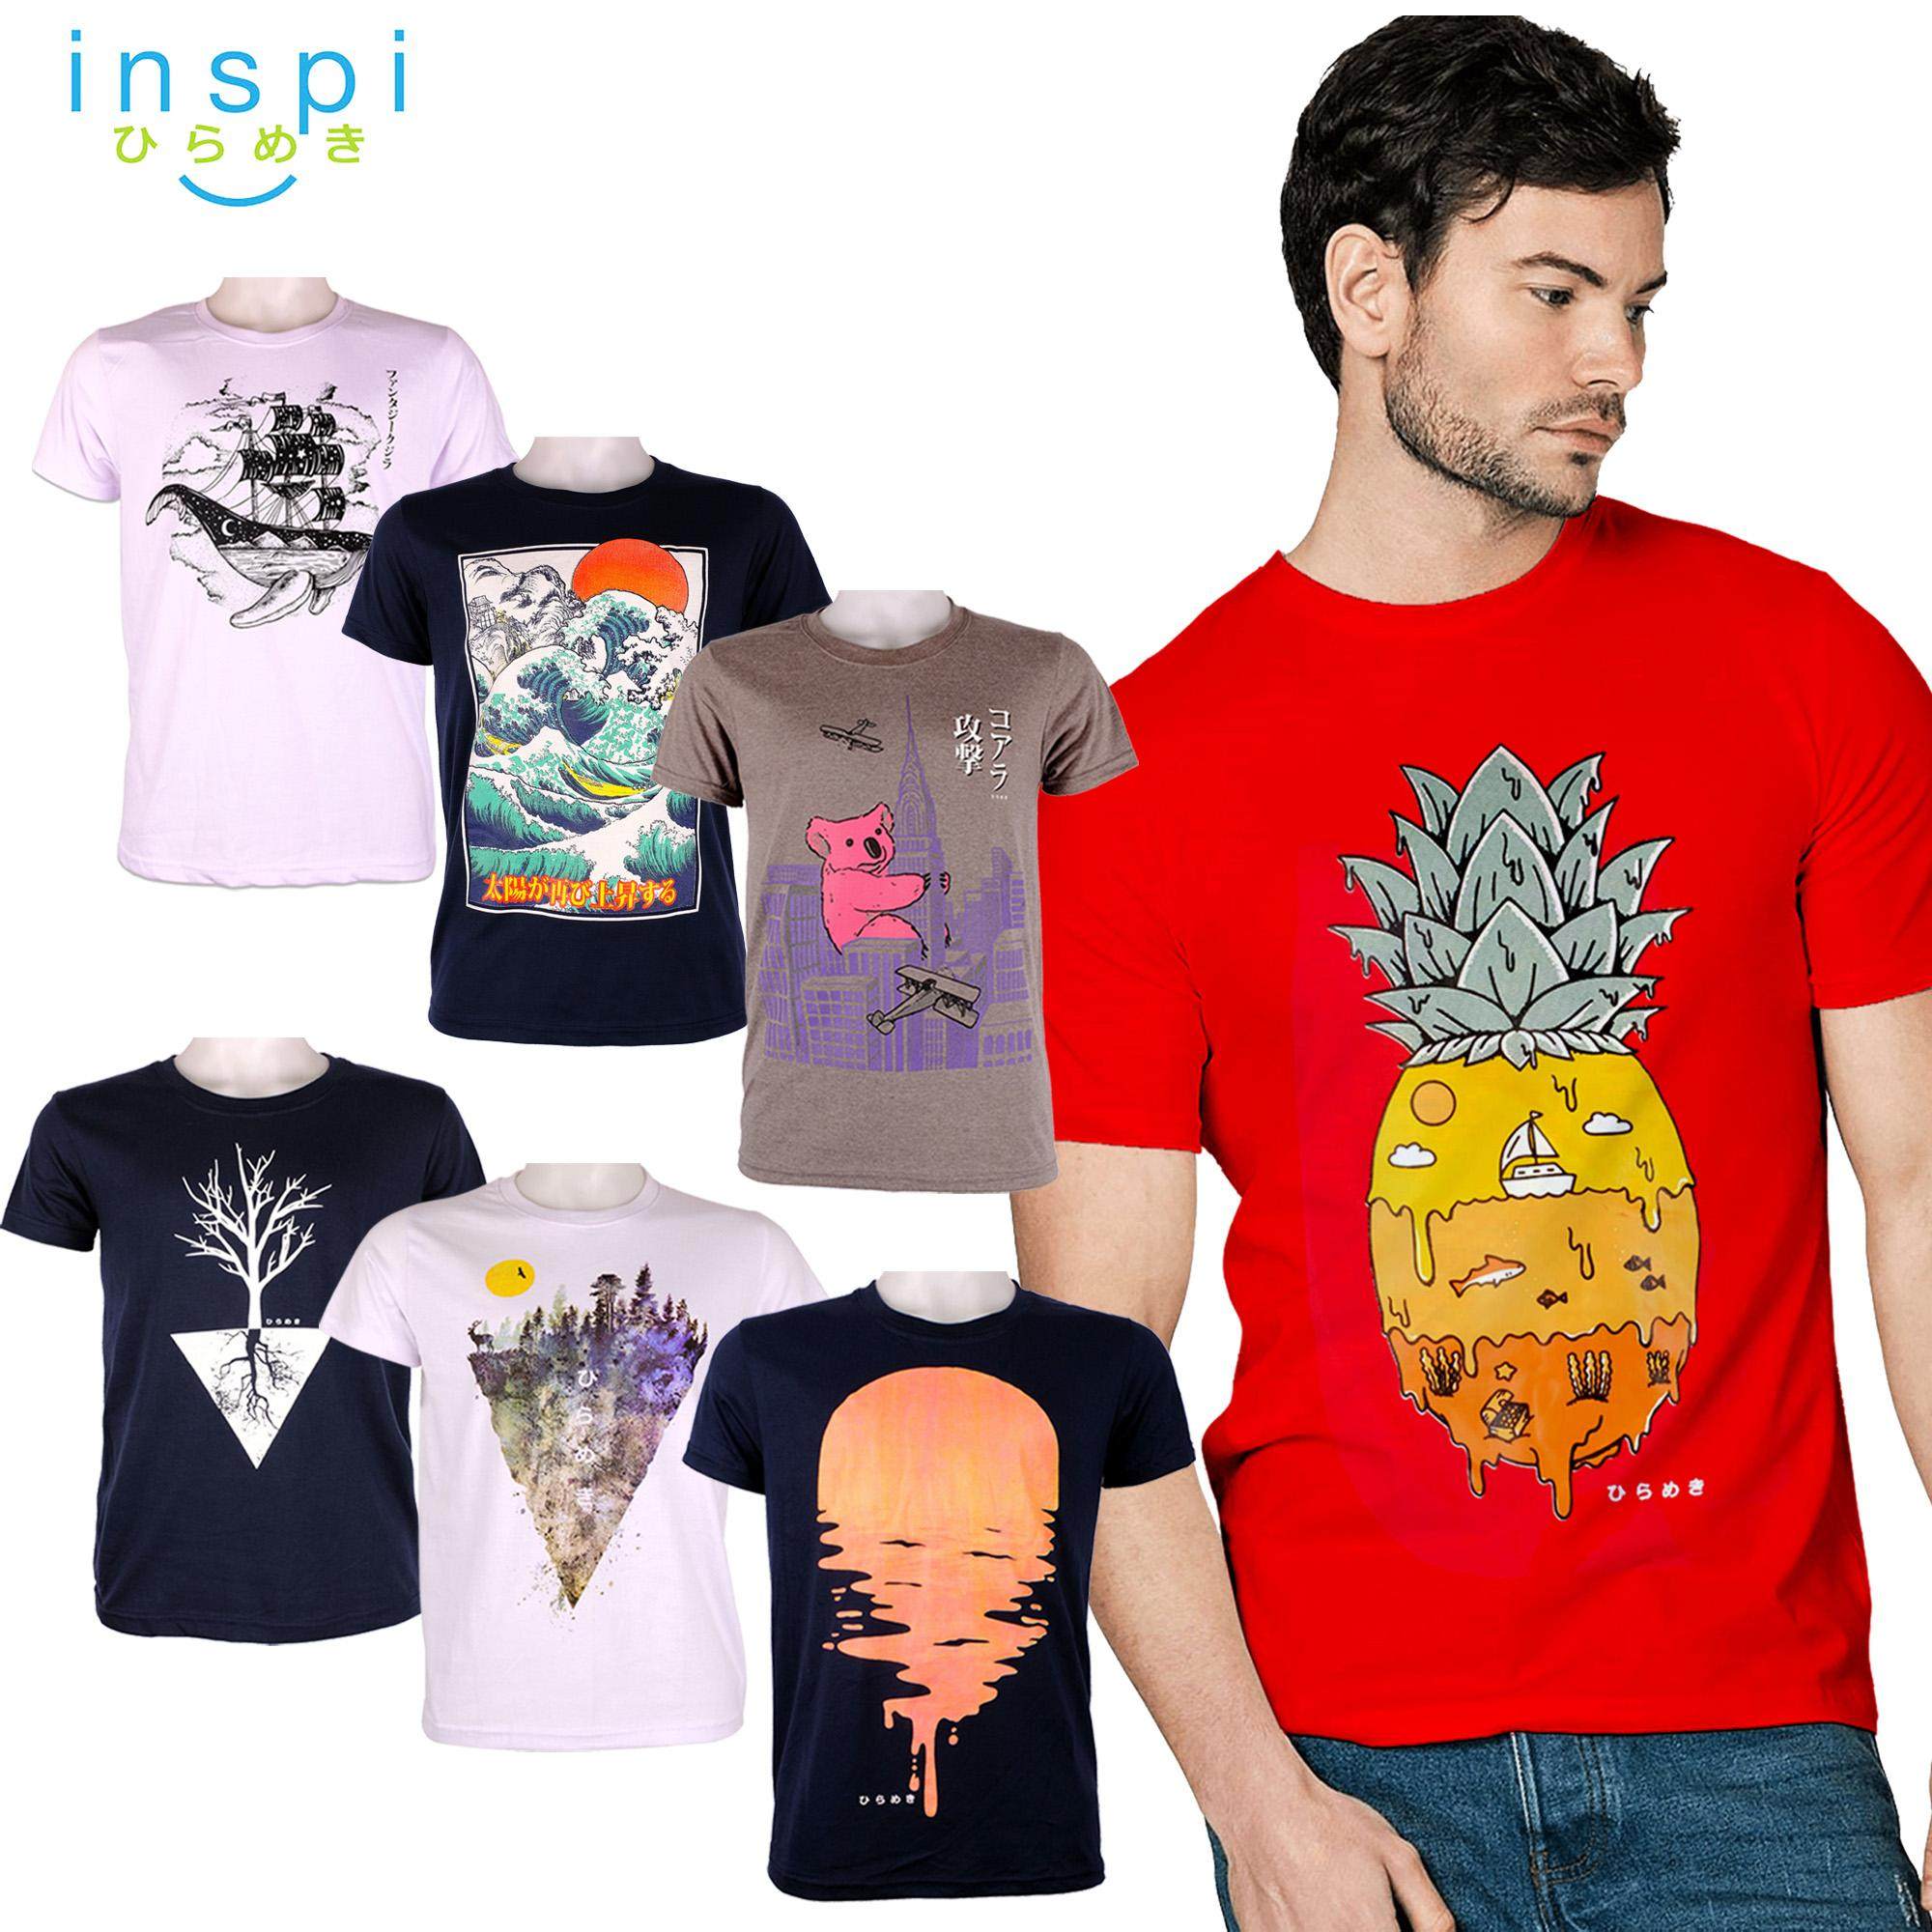 dc762c18fe16 INSPI Tees Nature Collection tshirt printed graphic tee Mens t shirt shirts  for men tshirts sale